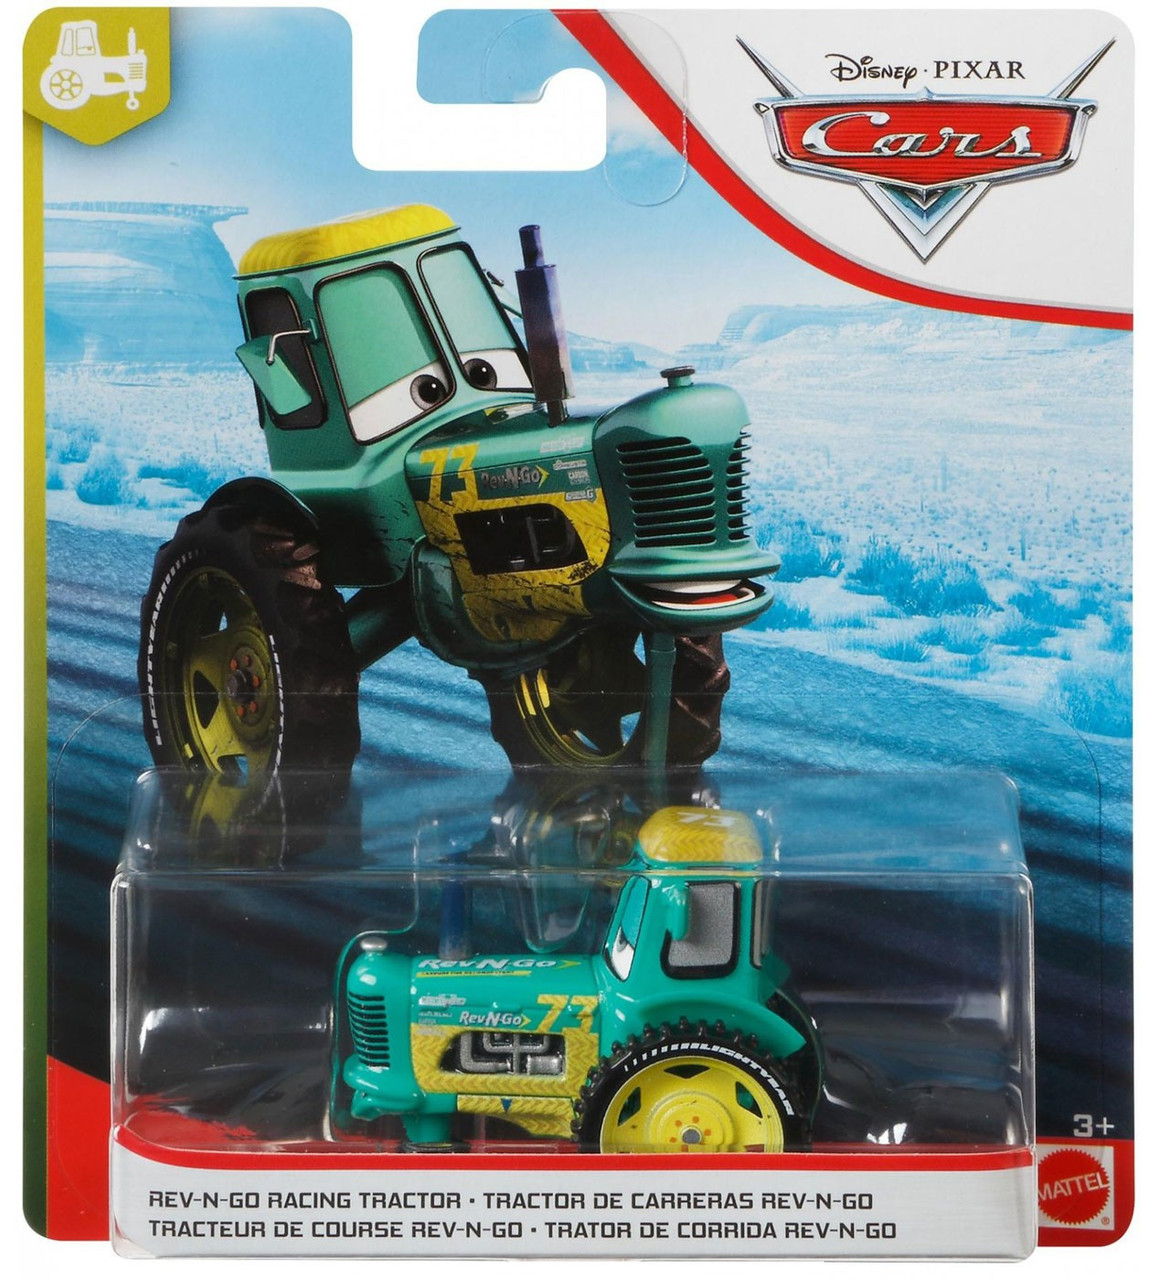 Disney Pixar Cars Cars 3 Tractor Training Rev N Go Racing Tractor